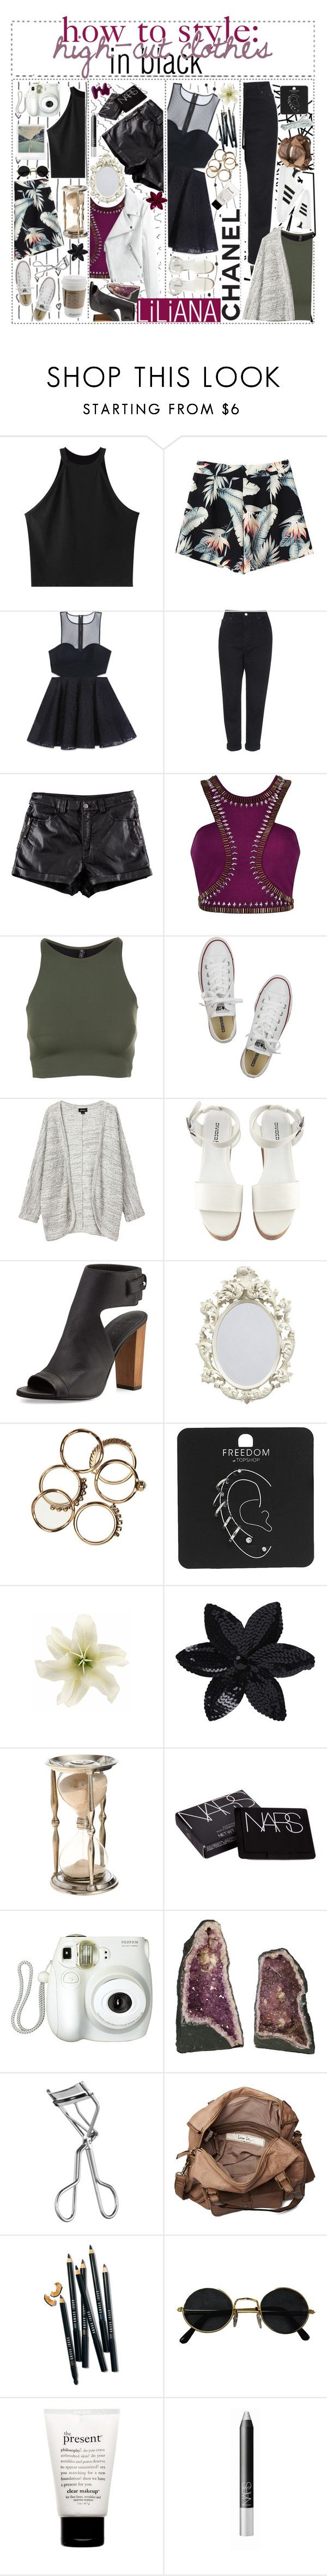 """""""how to style: high-cut clothes in black"""" by sorority-of-polyvore ❤ liked on Polyvore featuring Color Me, Chicnova Fashion, Bebe, Topshop, H&M, Onzie, Converse, Monki, adidas and Vince"""